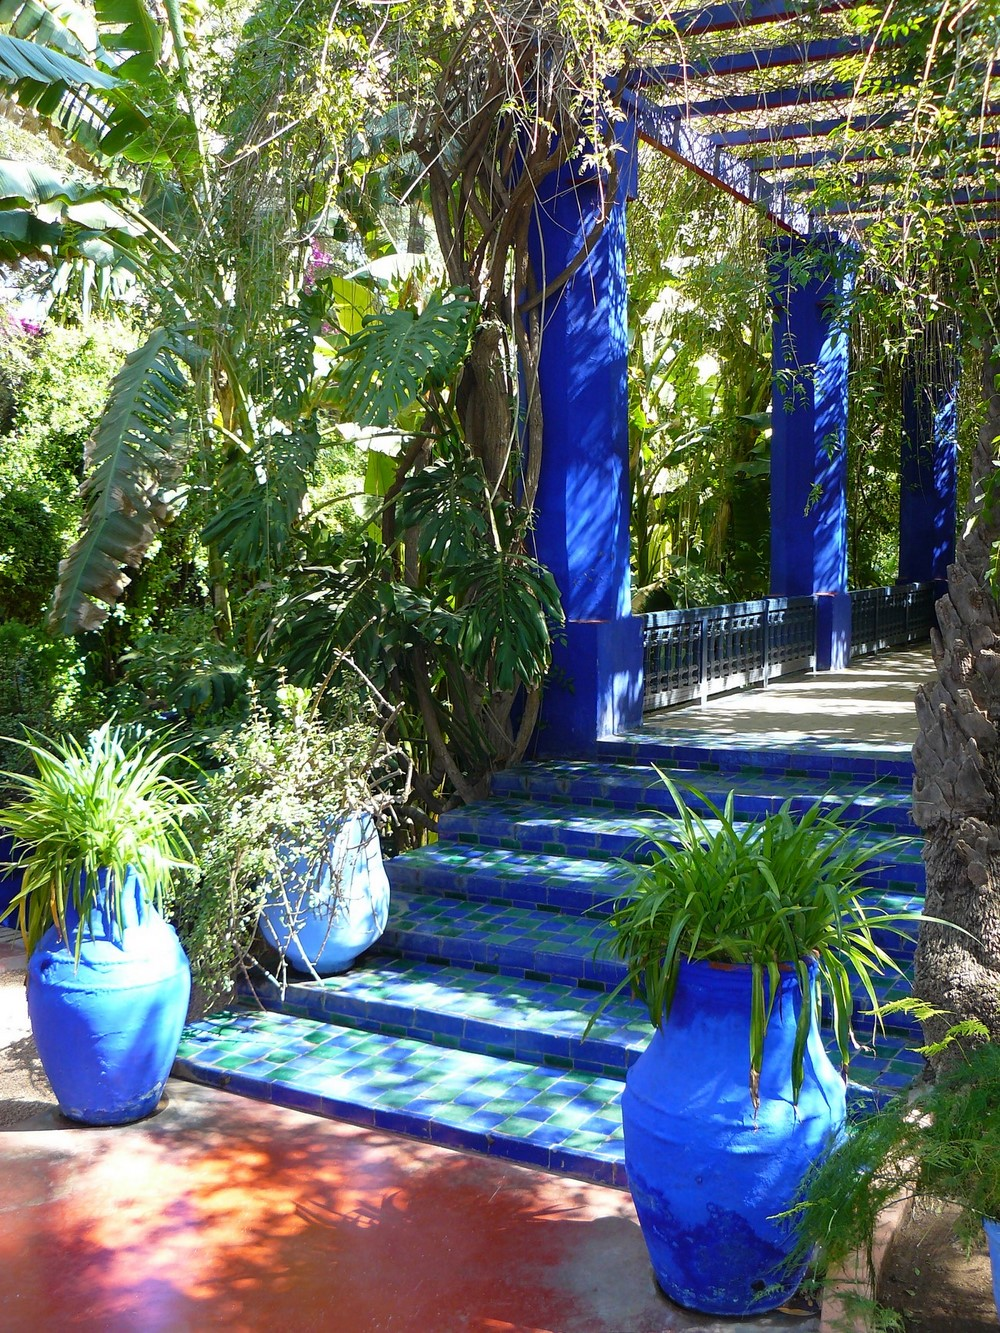 Marrakech 10 photos envo tantes du jardin majorelle for Jardin ysl marrakech